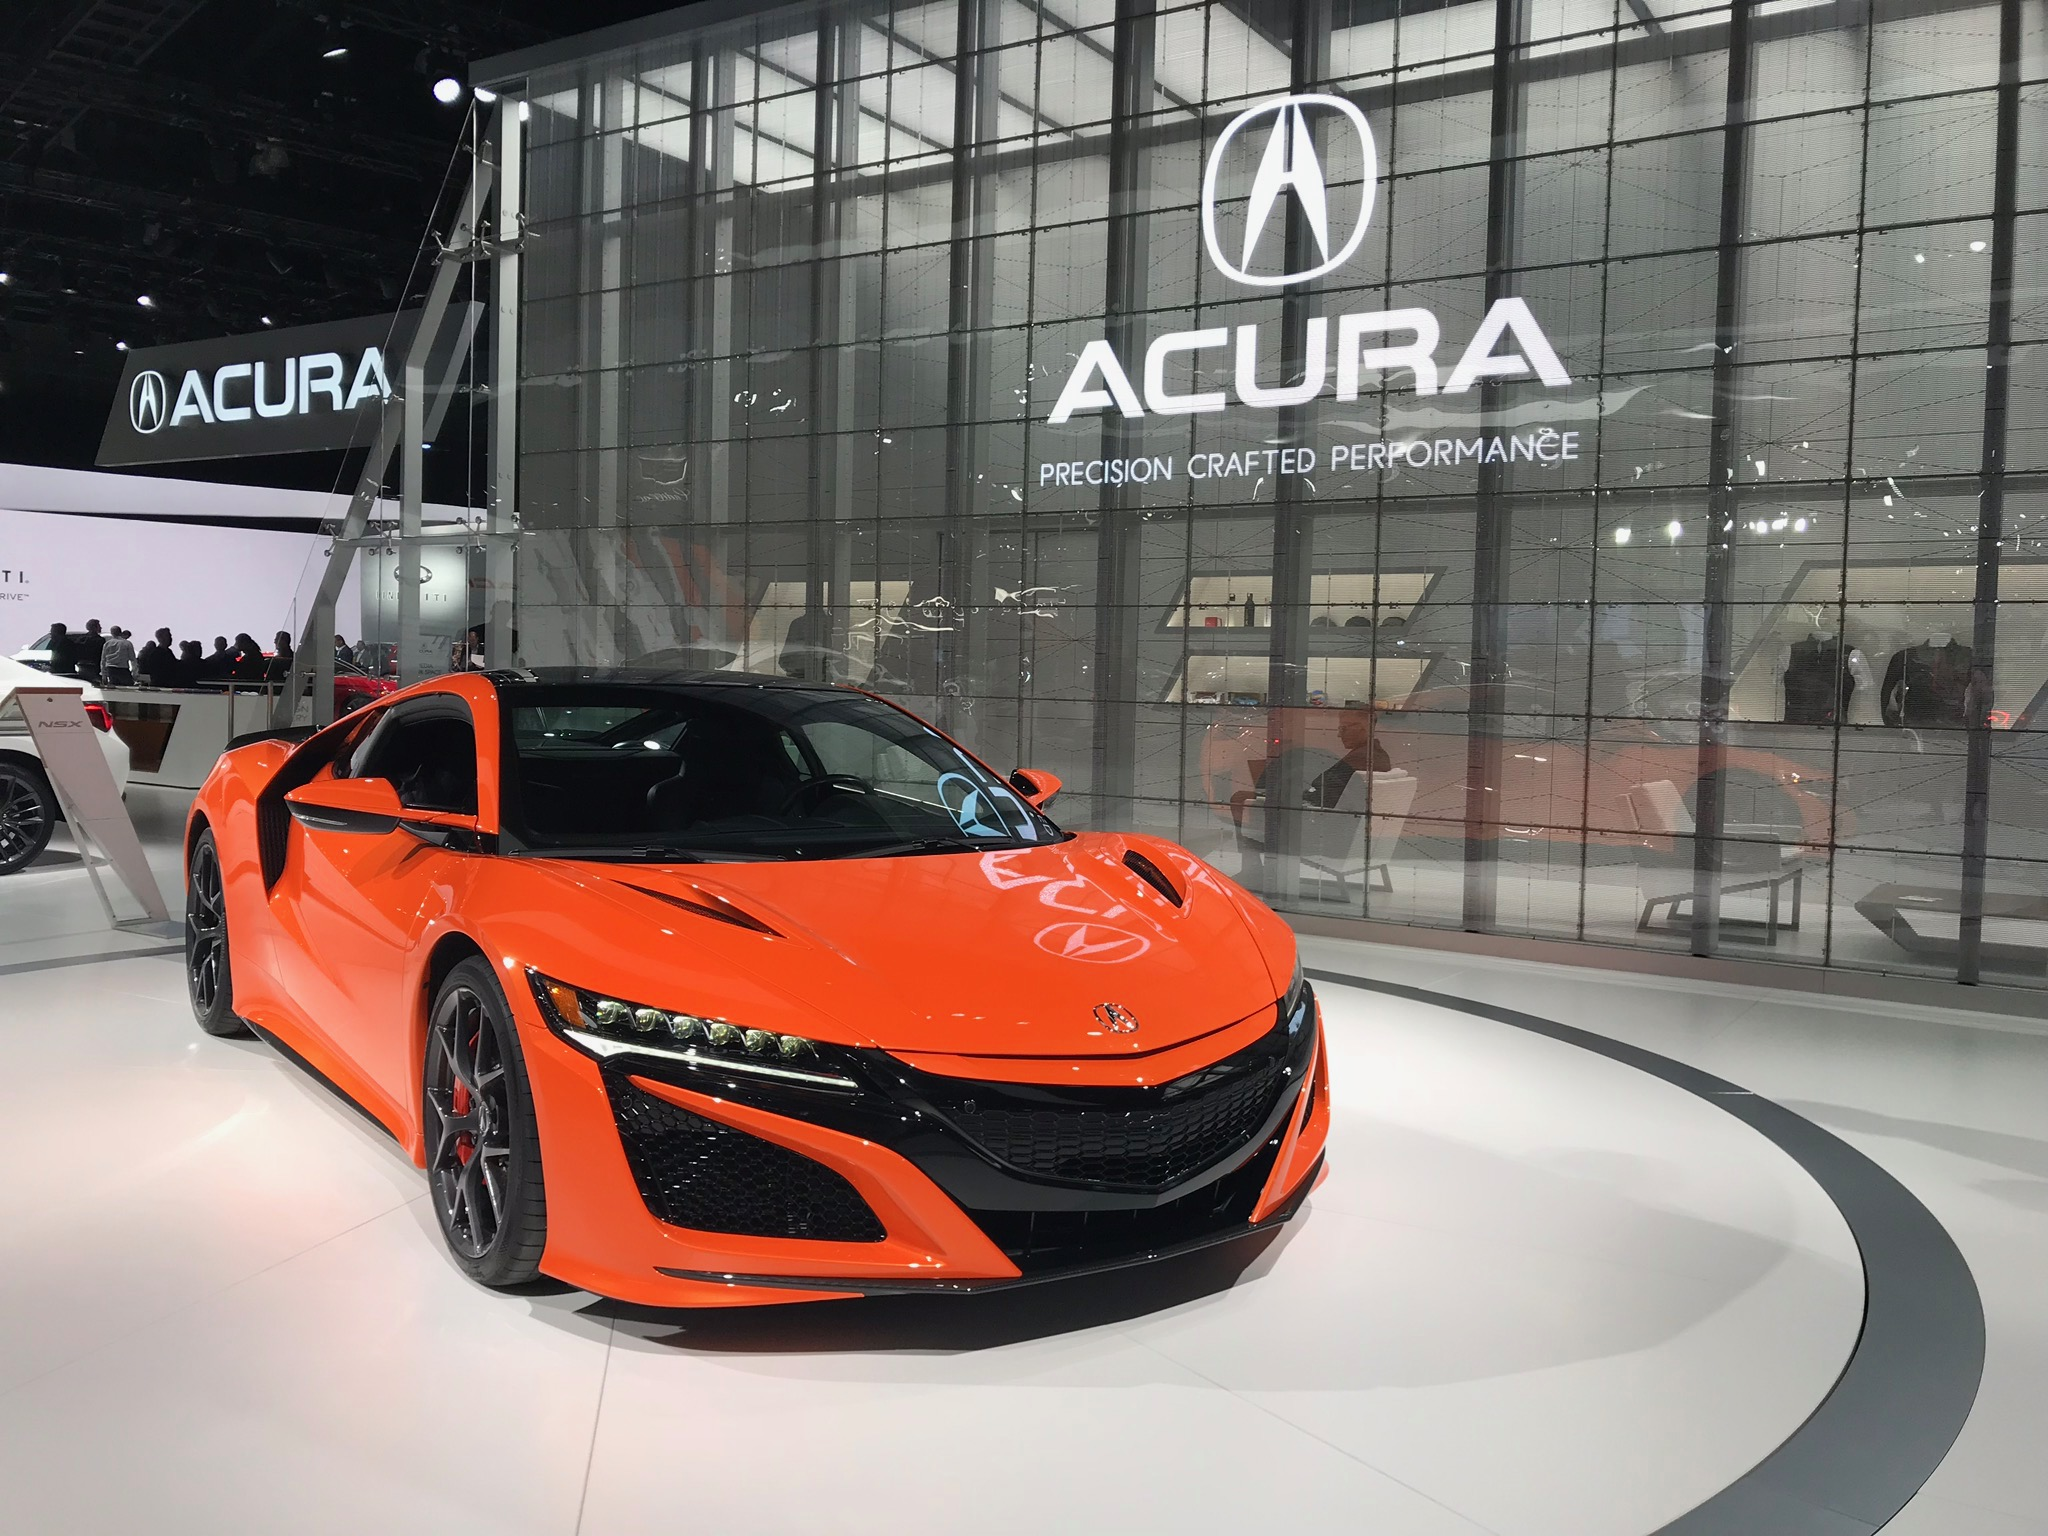 PHOTO GALLERY Cool Cars at the 2018 Los Angeles Auto Show